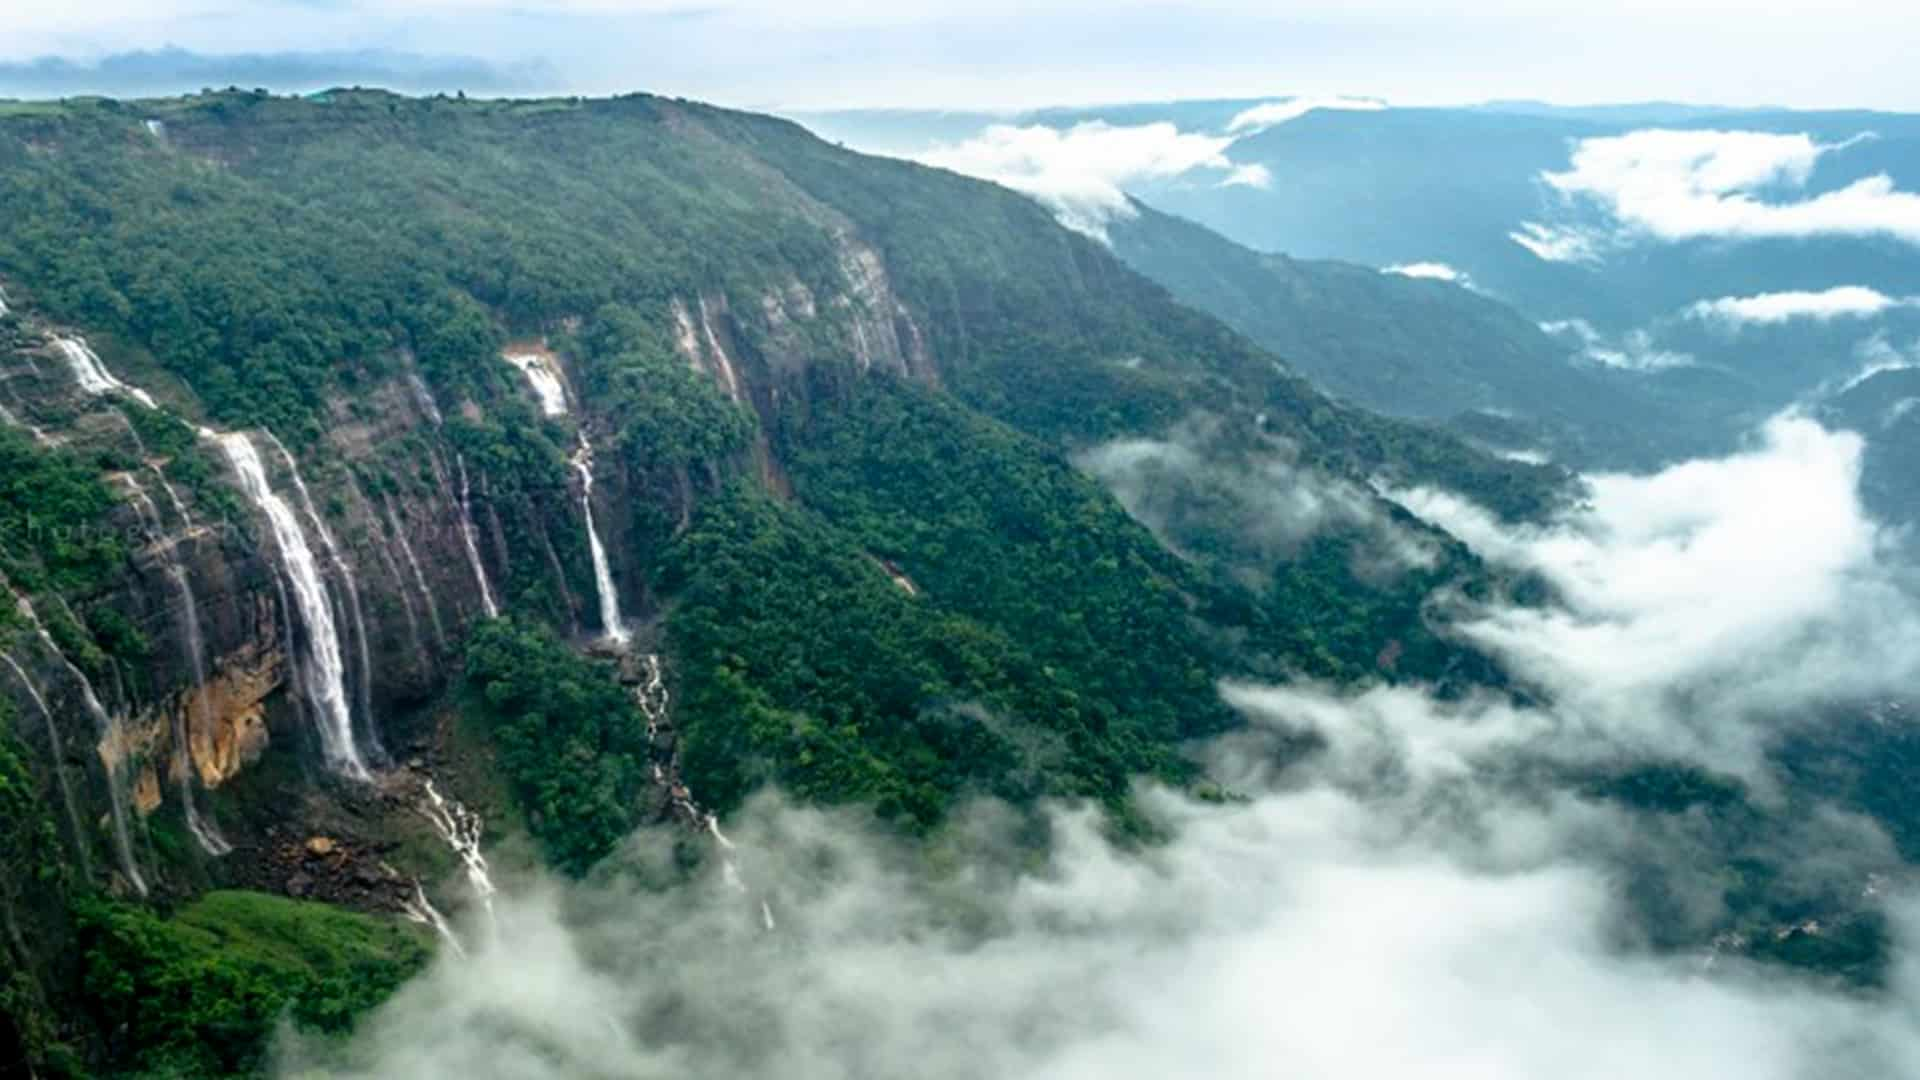 Shillong Is One Of The Top Hill Stations In India